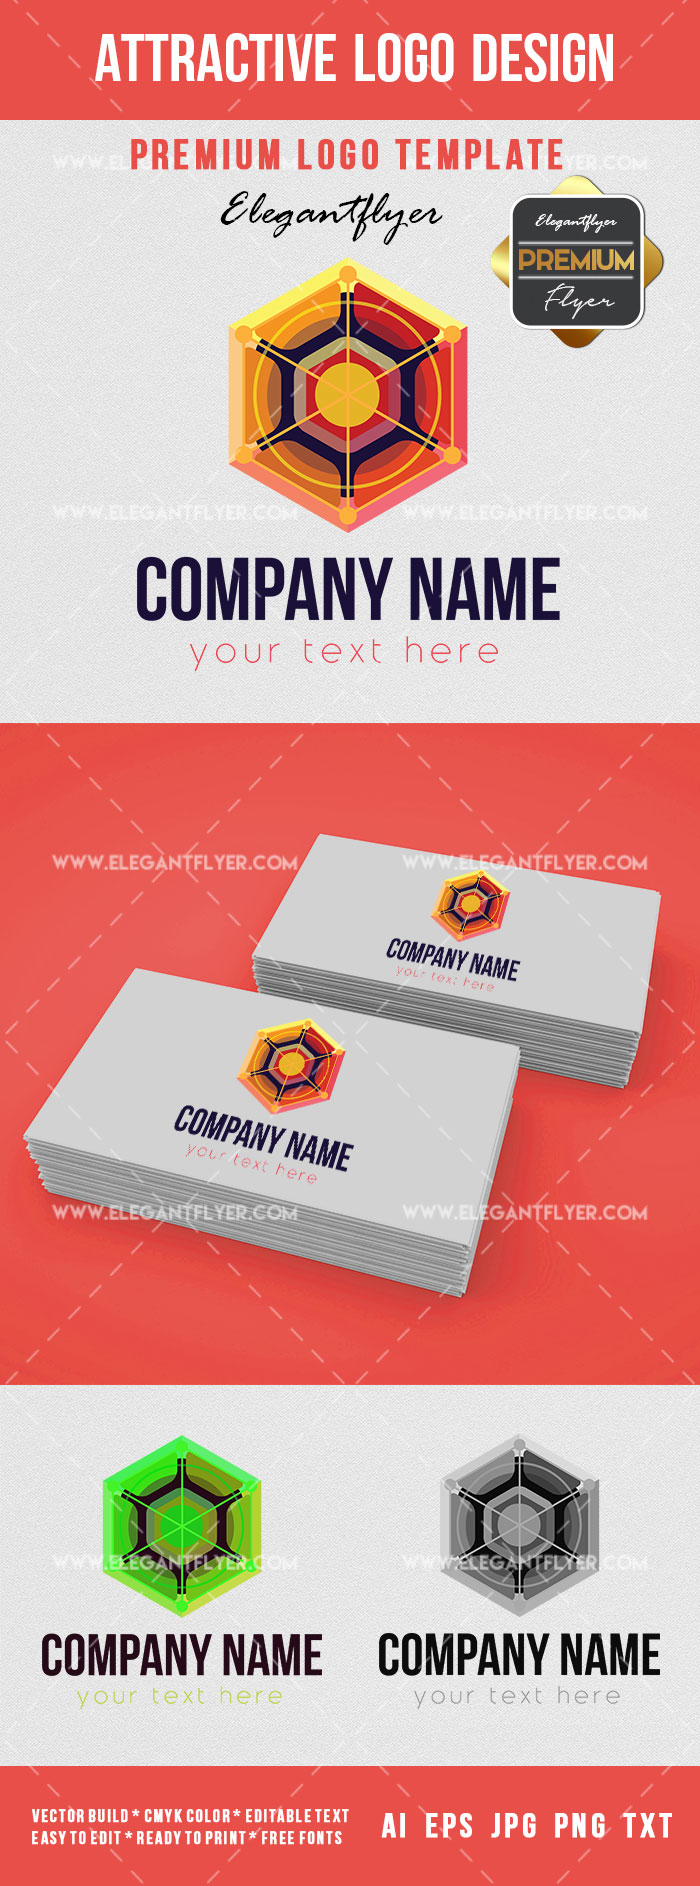 Template for Attractive Logo